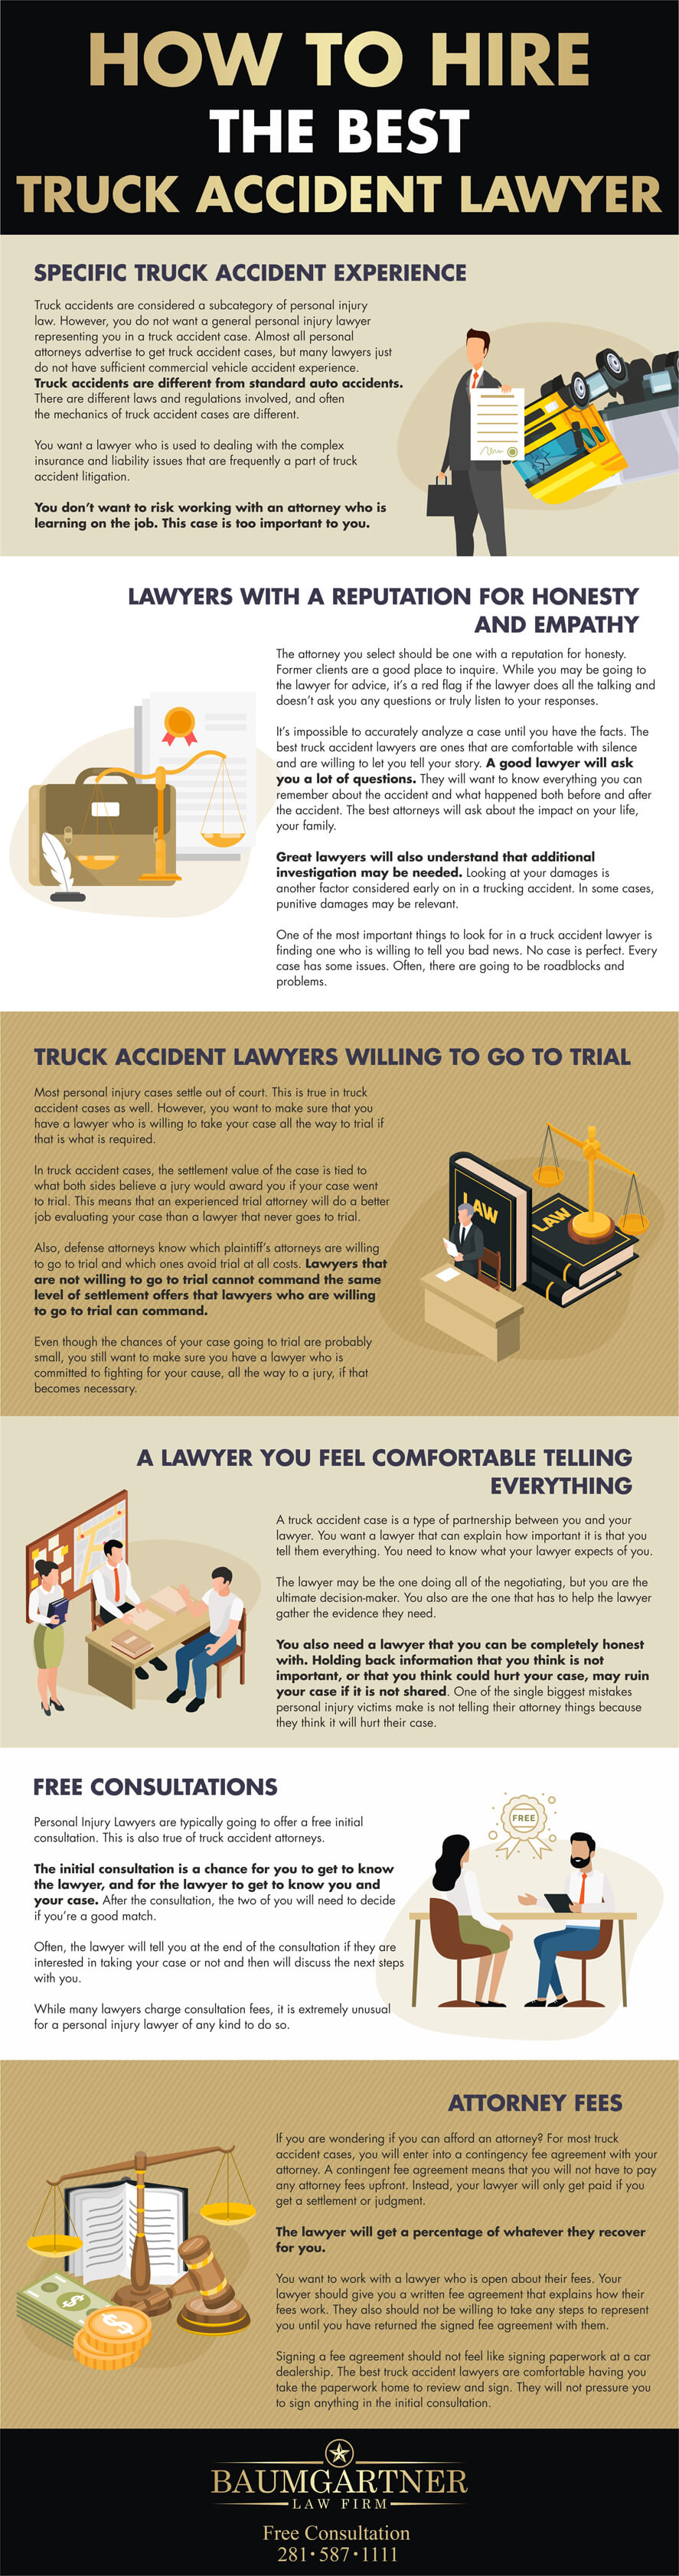 How-to-hire-the-best-truck-accident-lawyer-infographic-plaza